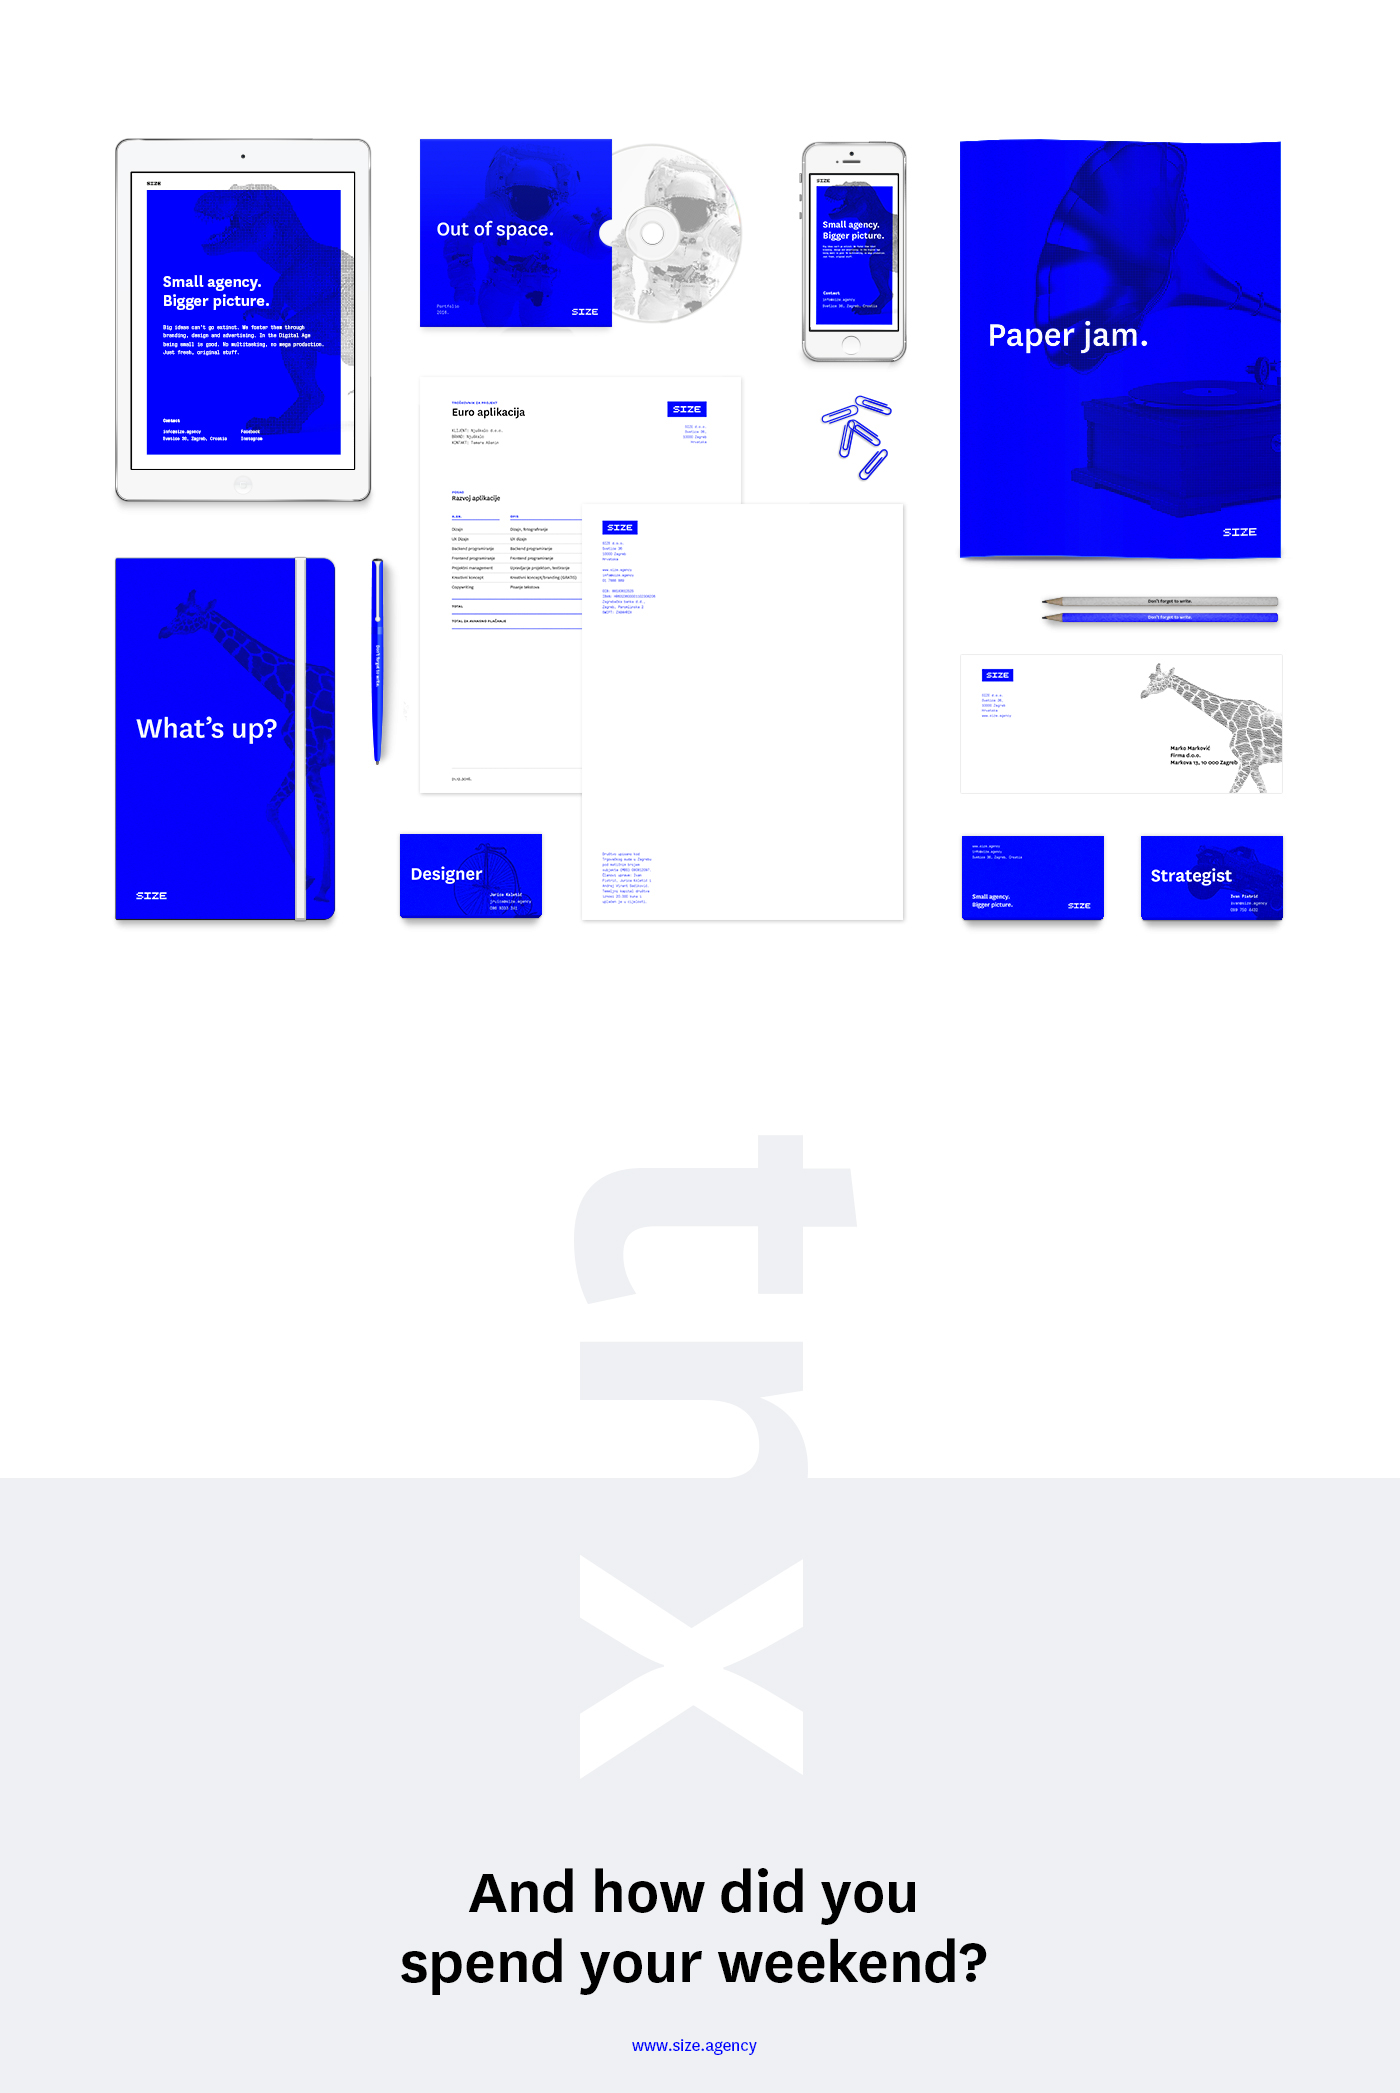 size size.agency agency small agency Bigger picture small bigger pictture #0000ff blue raster pixelart grid Zagreb Croatia